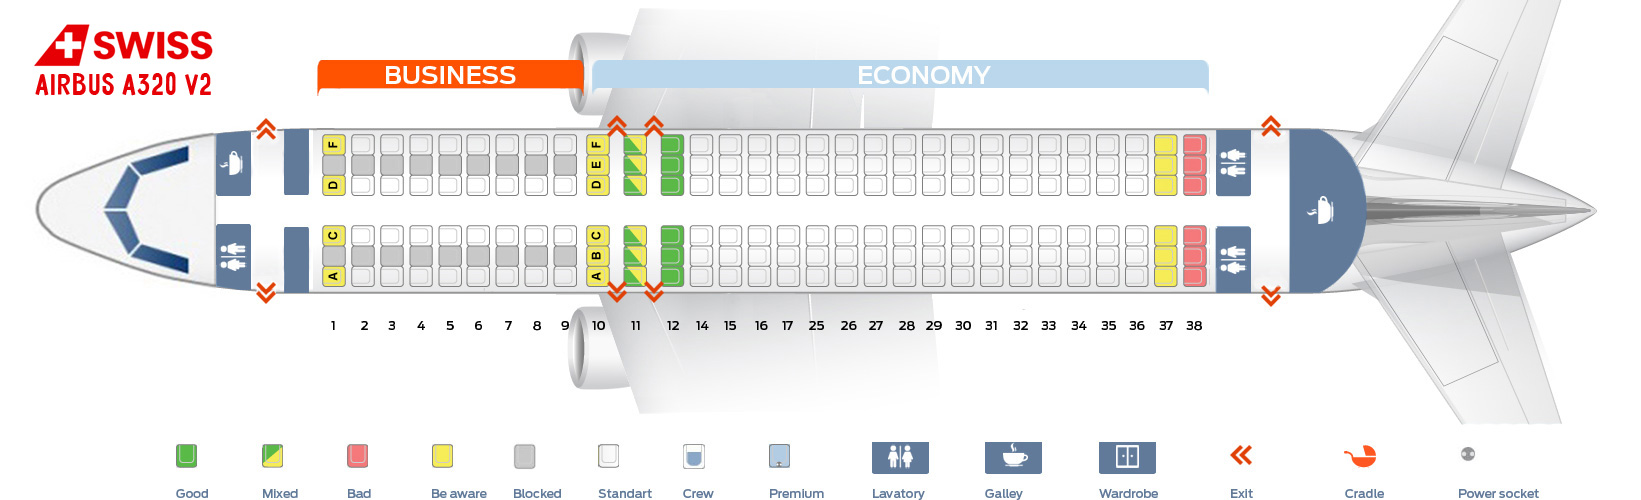 Seat Map Airbus A320 V2 Swiss Airlines